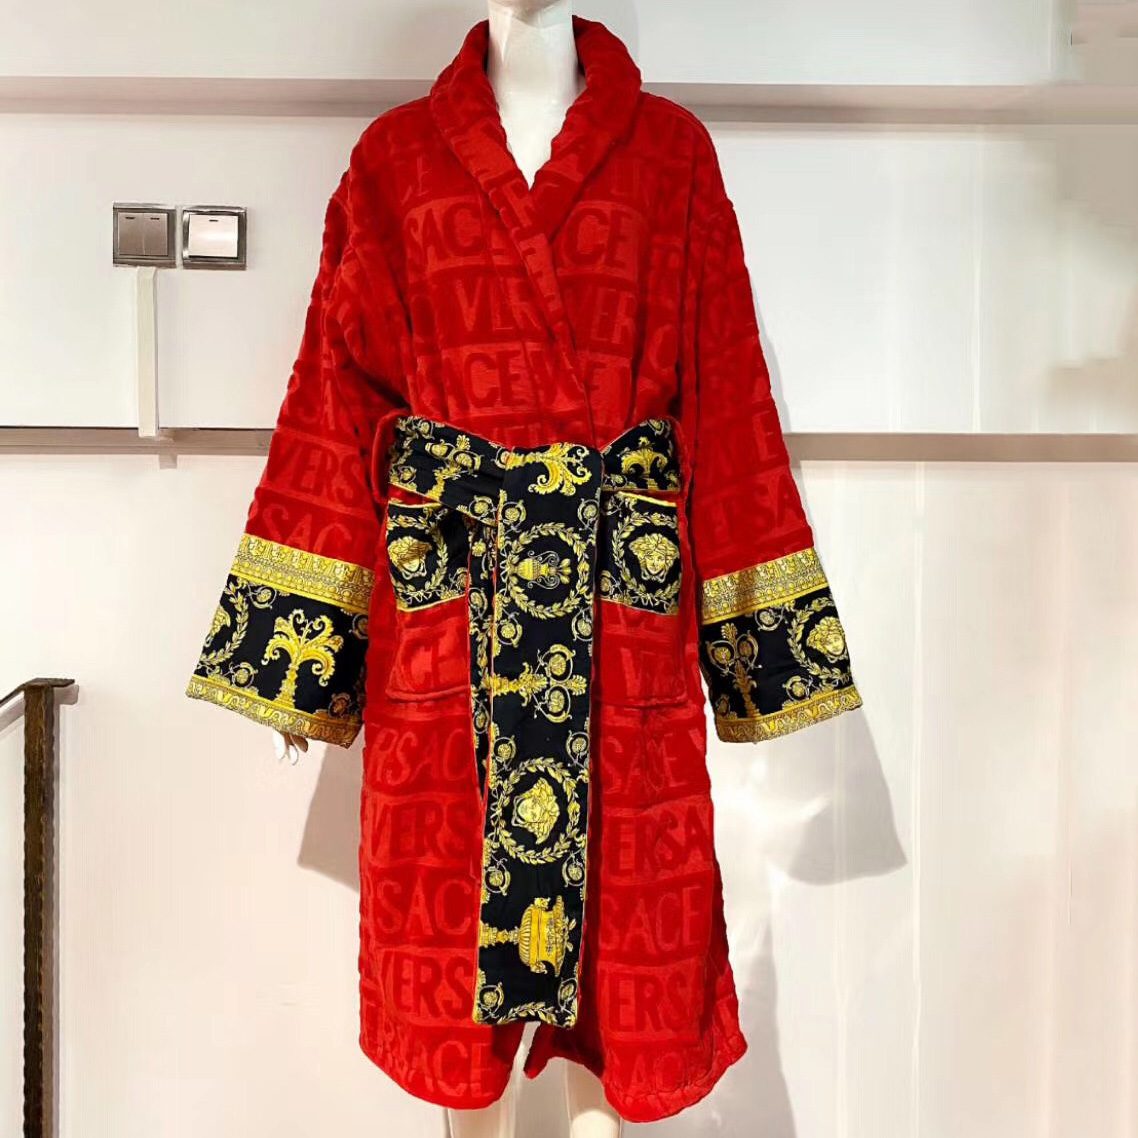 Versace Baroque Logo Jacquard Red Bathrobe - FashionBeast